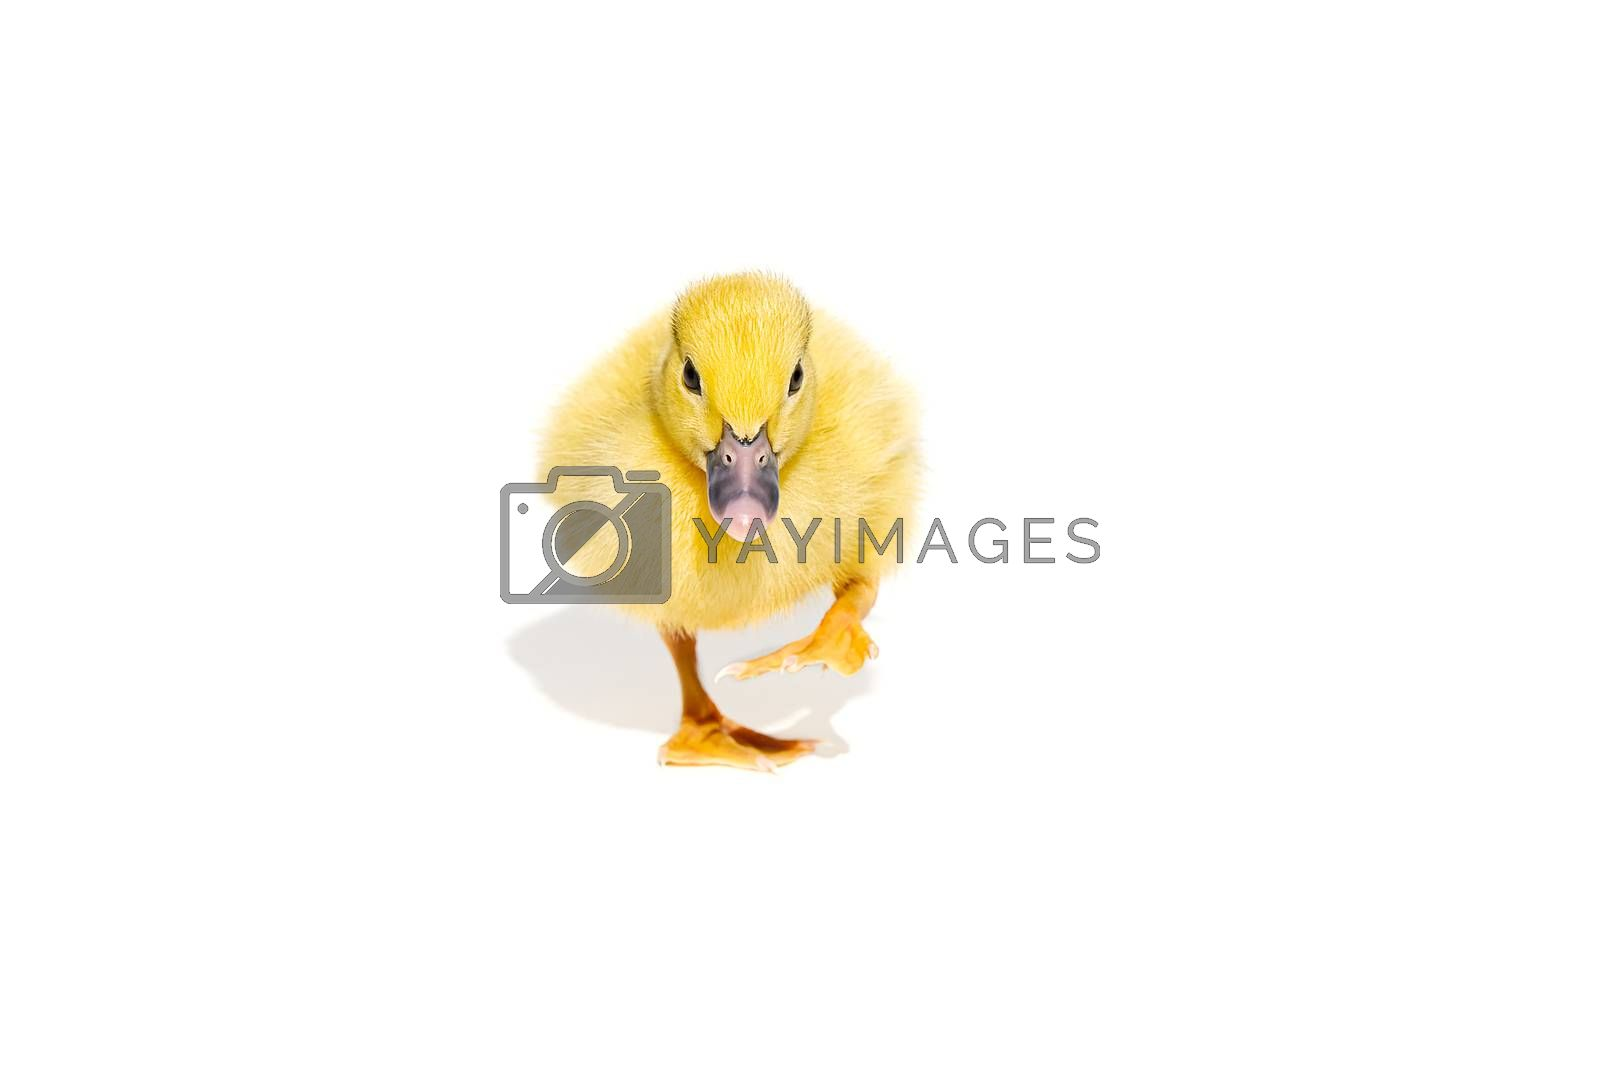 NewBorn little Cute yellow duckling isolated on white